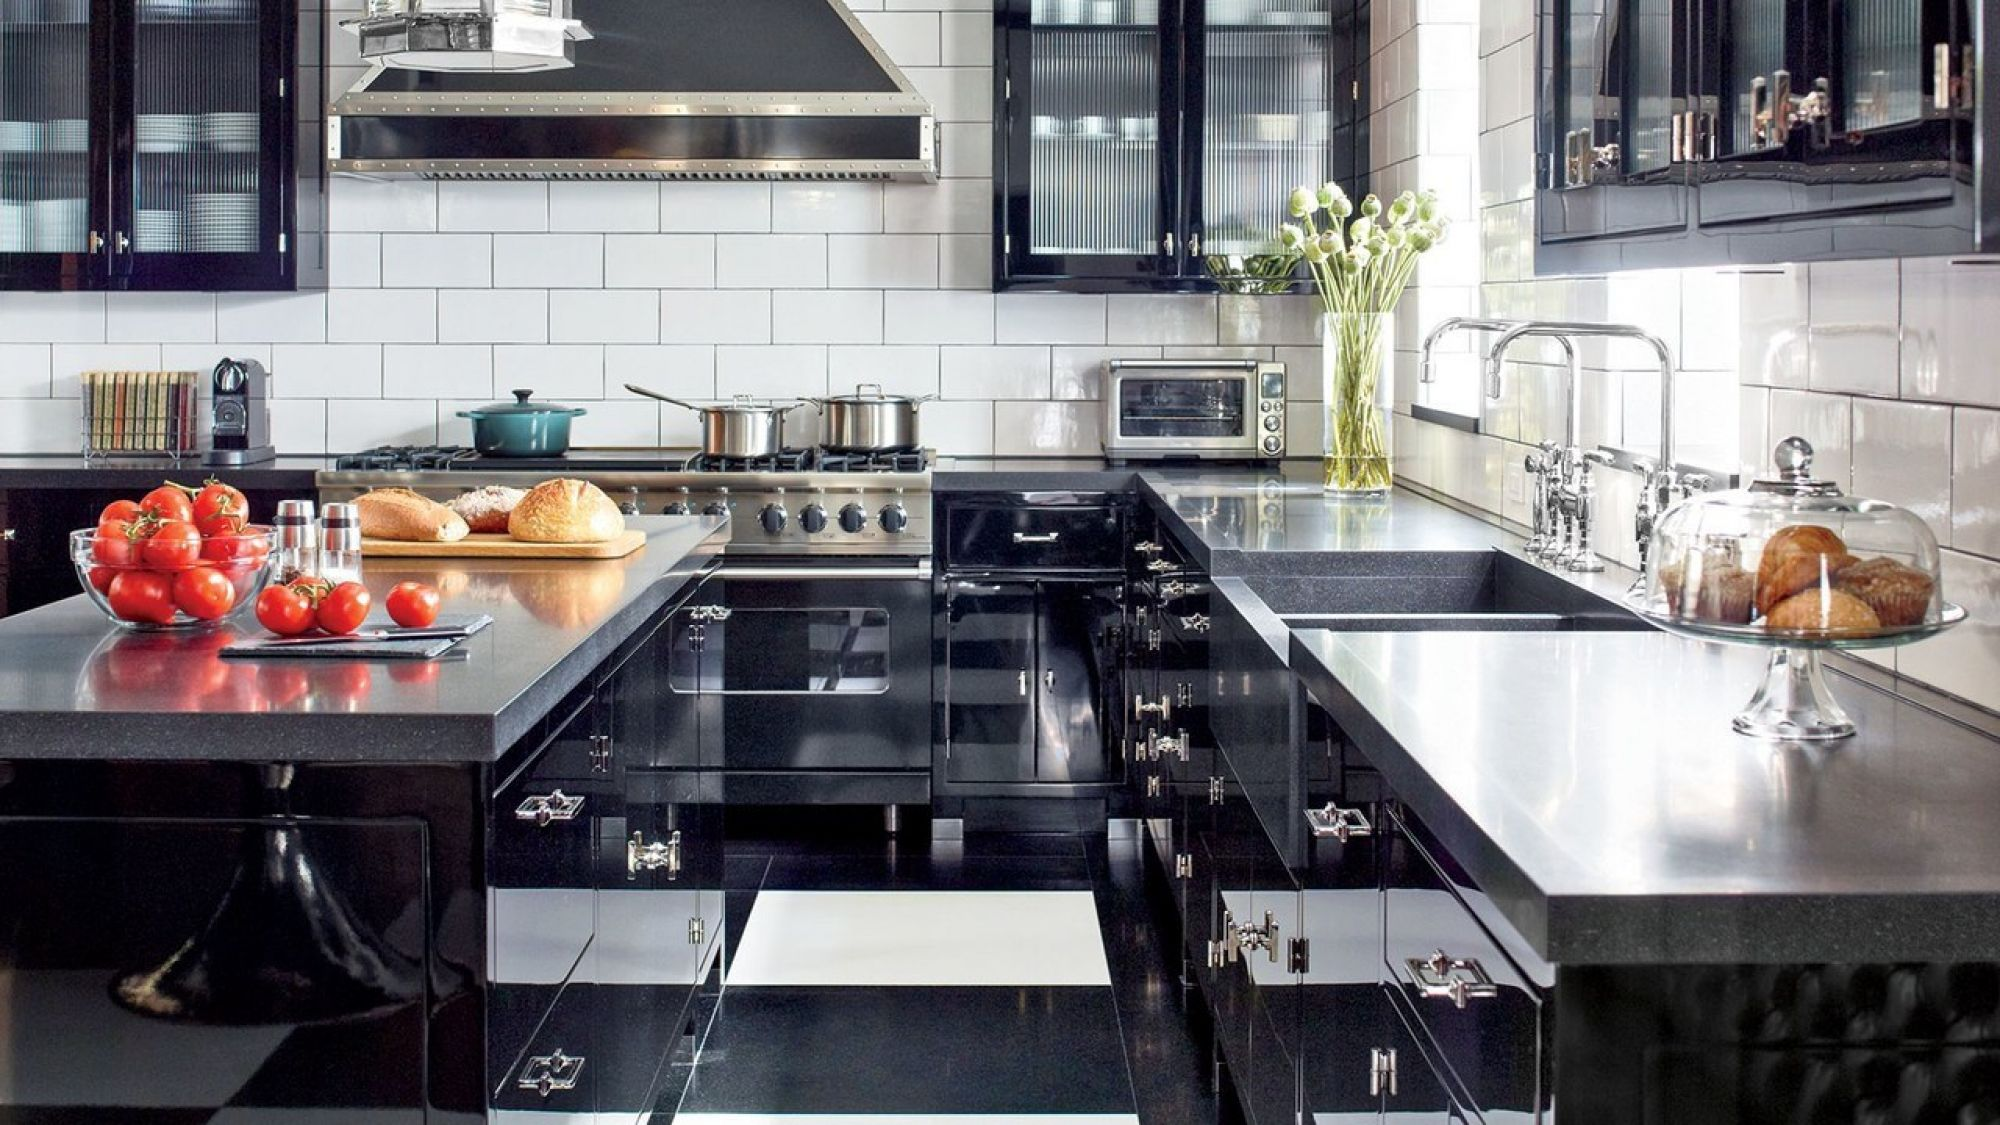 Instead of doing a new kitchen, we gave the traditional white cabinets a high-dose of glamor by painting them glossy black. A kitchen by New York designer Steven Gambrel was a source of inspiration. (Image: Steven Gambrel)